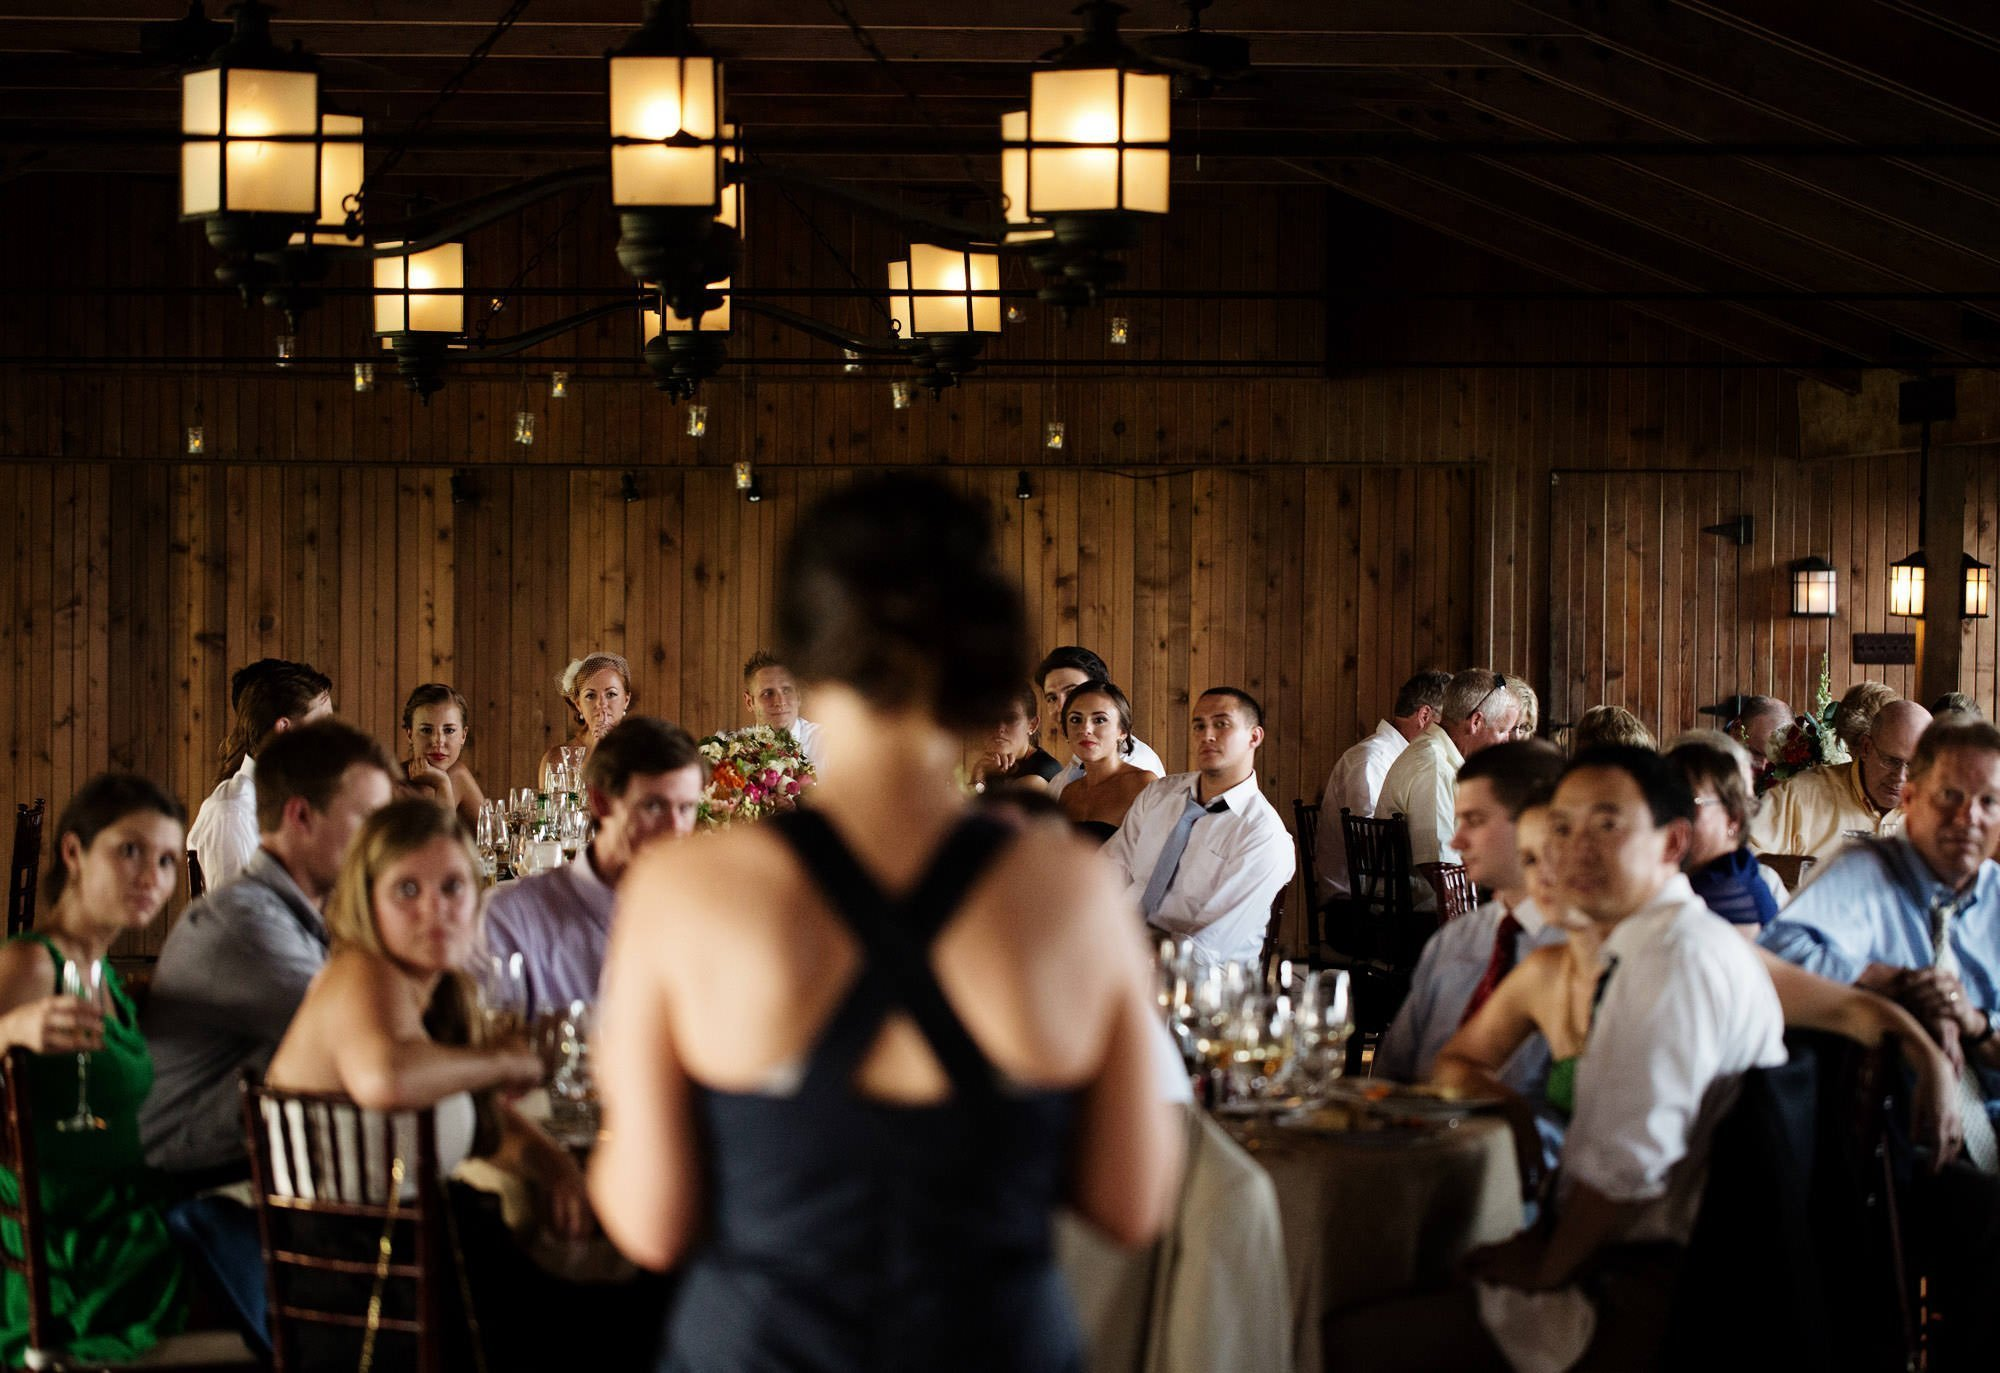 Guests listen to toasts during the wedding reception at Marriott Ranch.